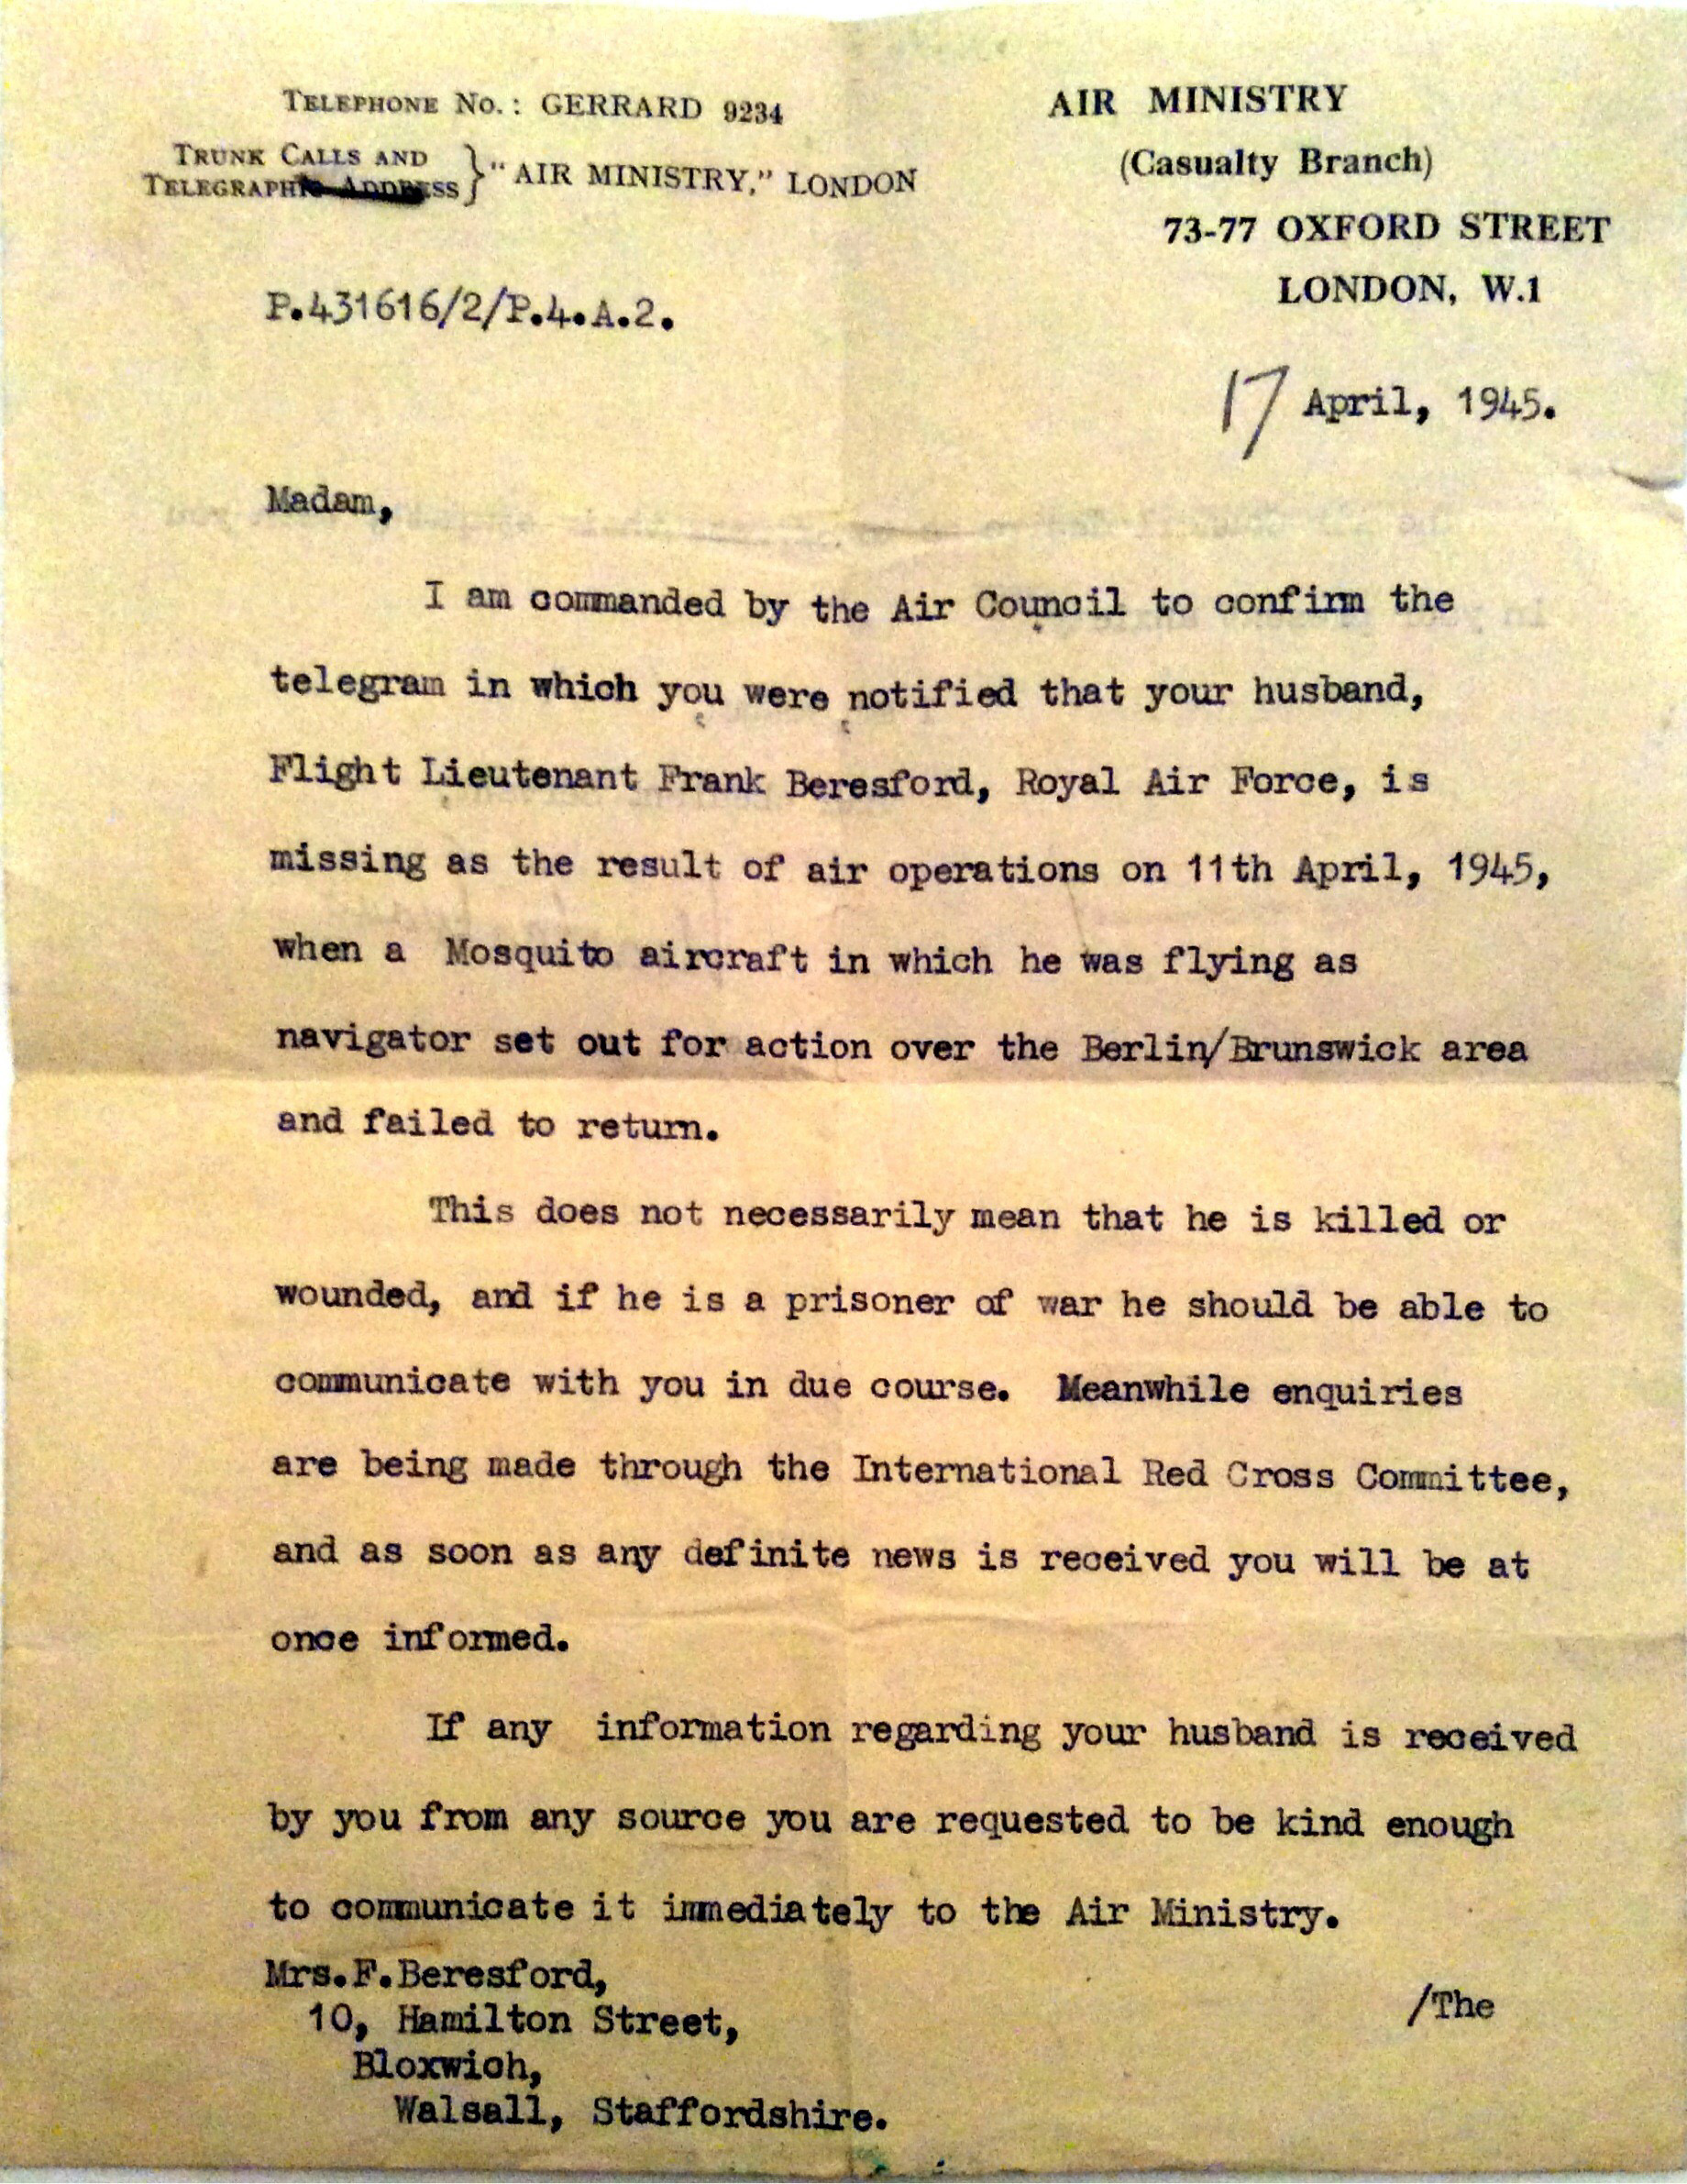 First page of the Air Ministry letter dated 17th April 1945